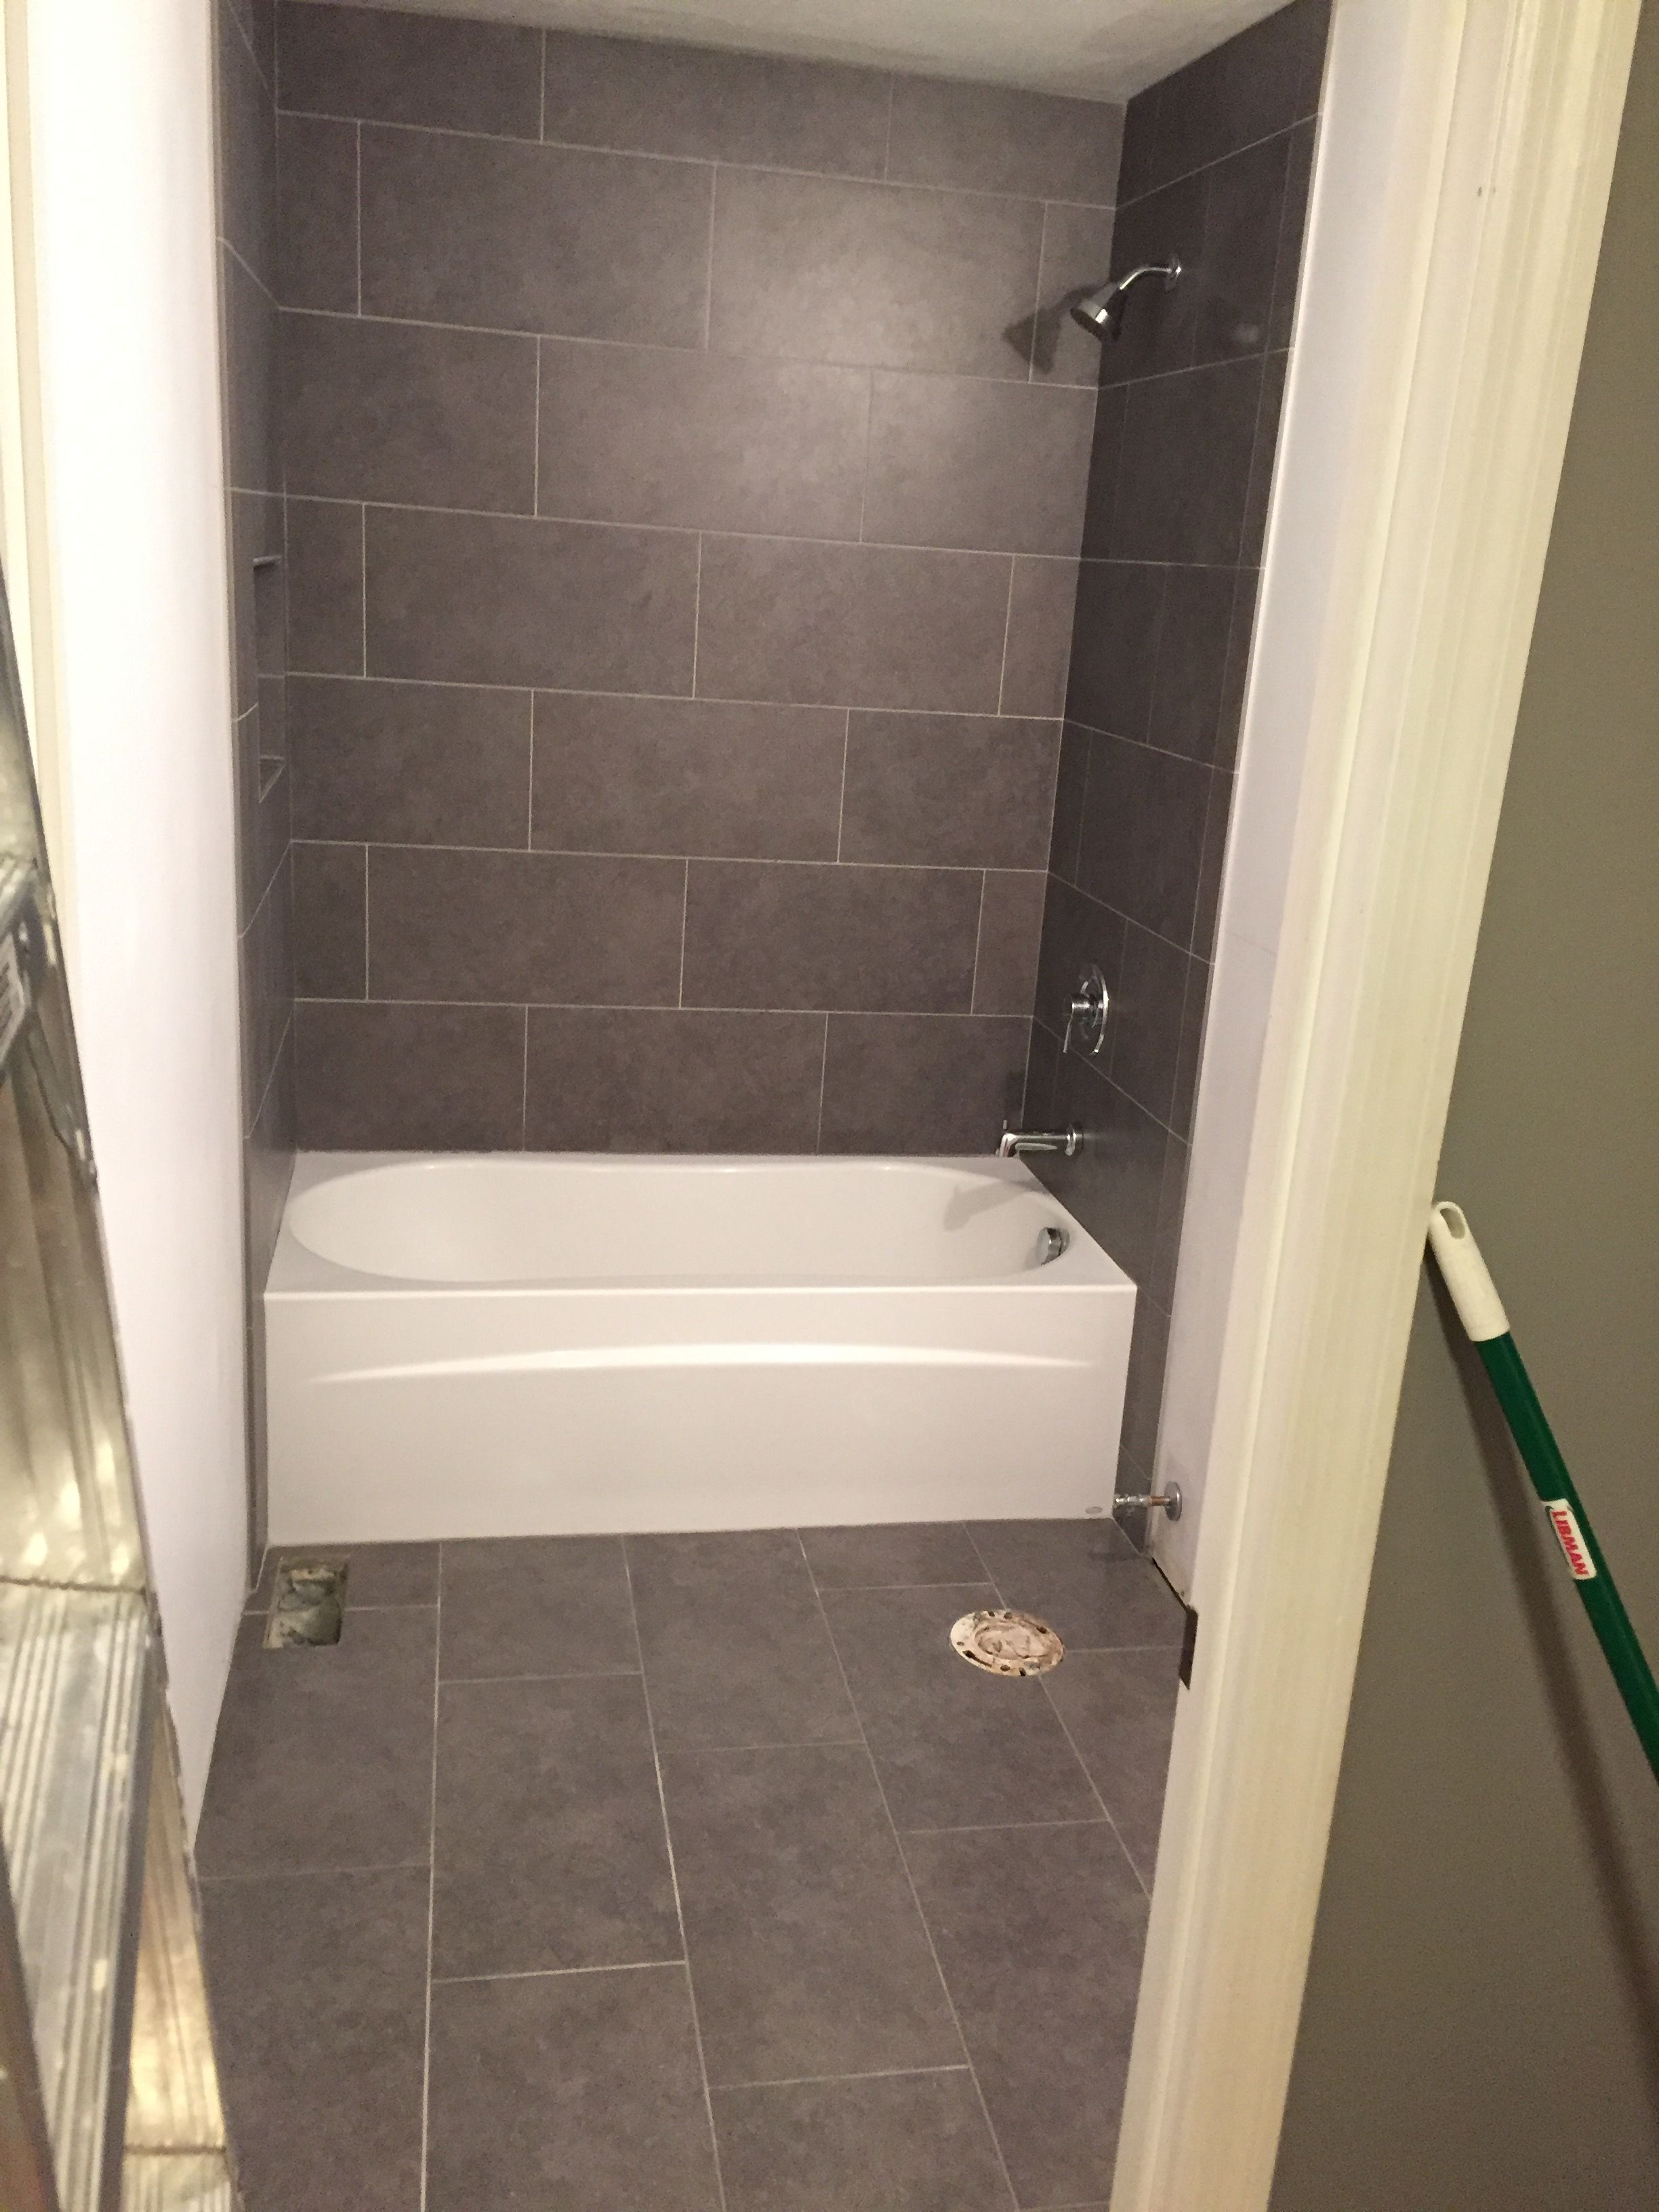 Lowe's mitte gray tile 12x24 bathroom tub surround and